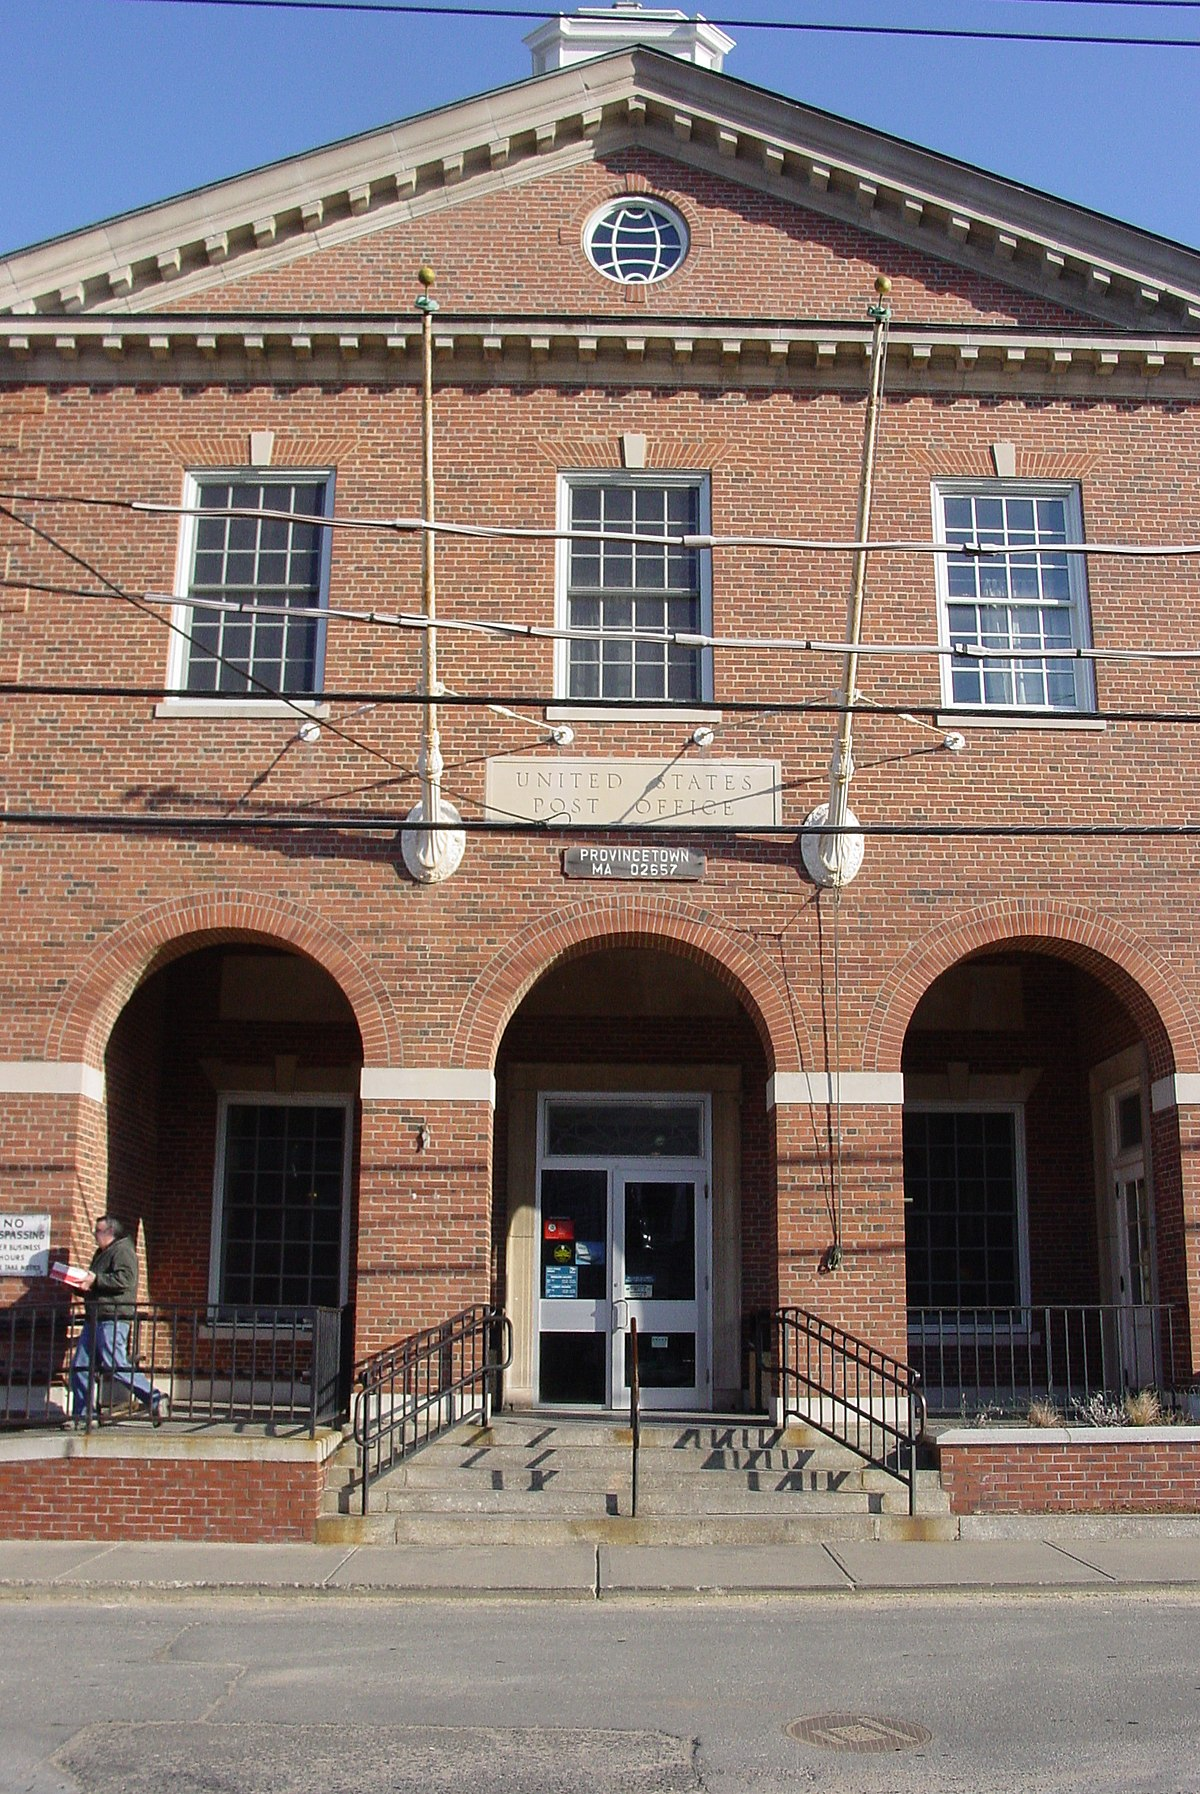 United states post office provincetown massachusetts wikipedia - United states post office ...